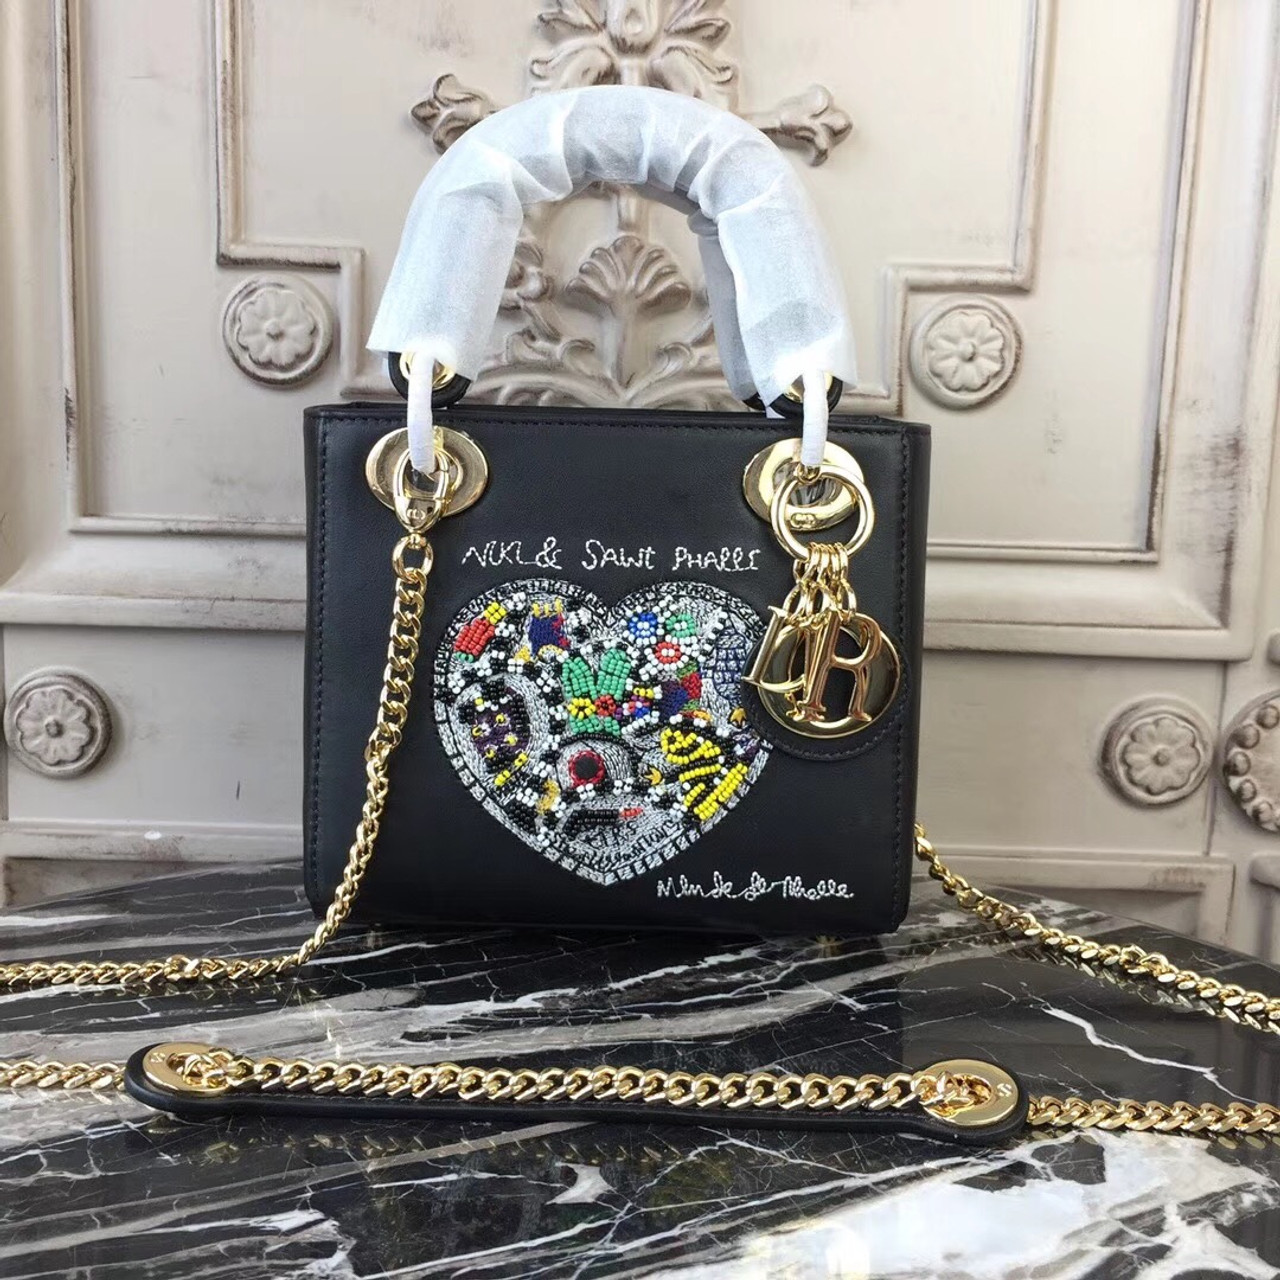 62a0de9b41f2 Lady Dior Niki de Saint Phalle Bead Embroidered Bag with Chain 18cm Gold  Hardware Smooth Lambskin